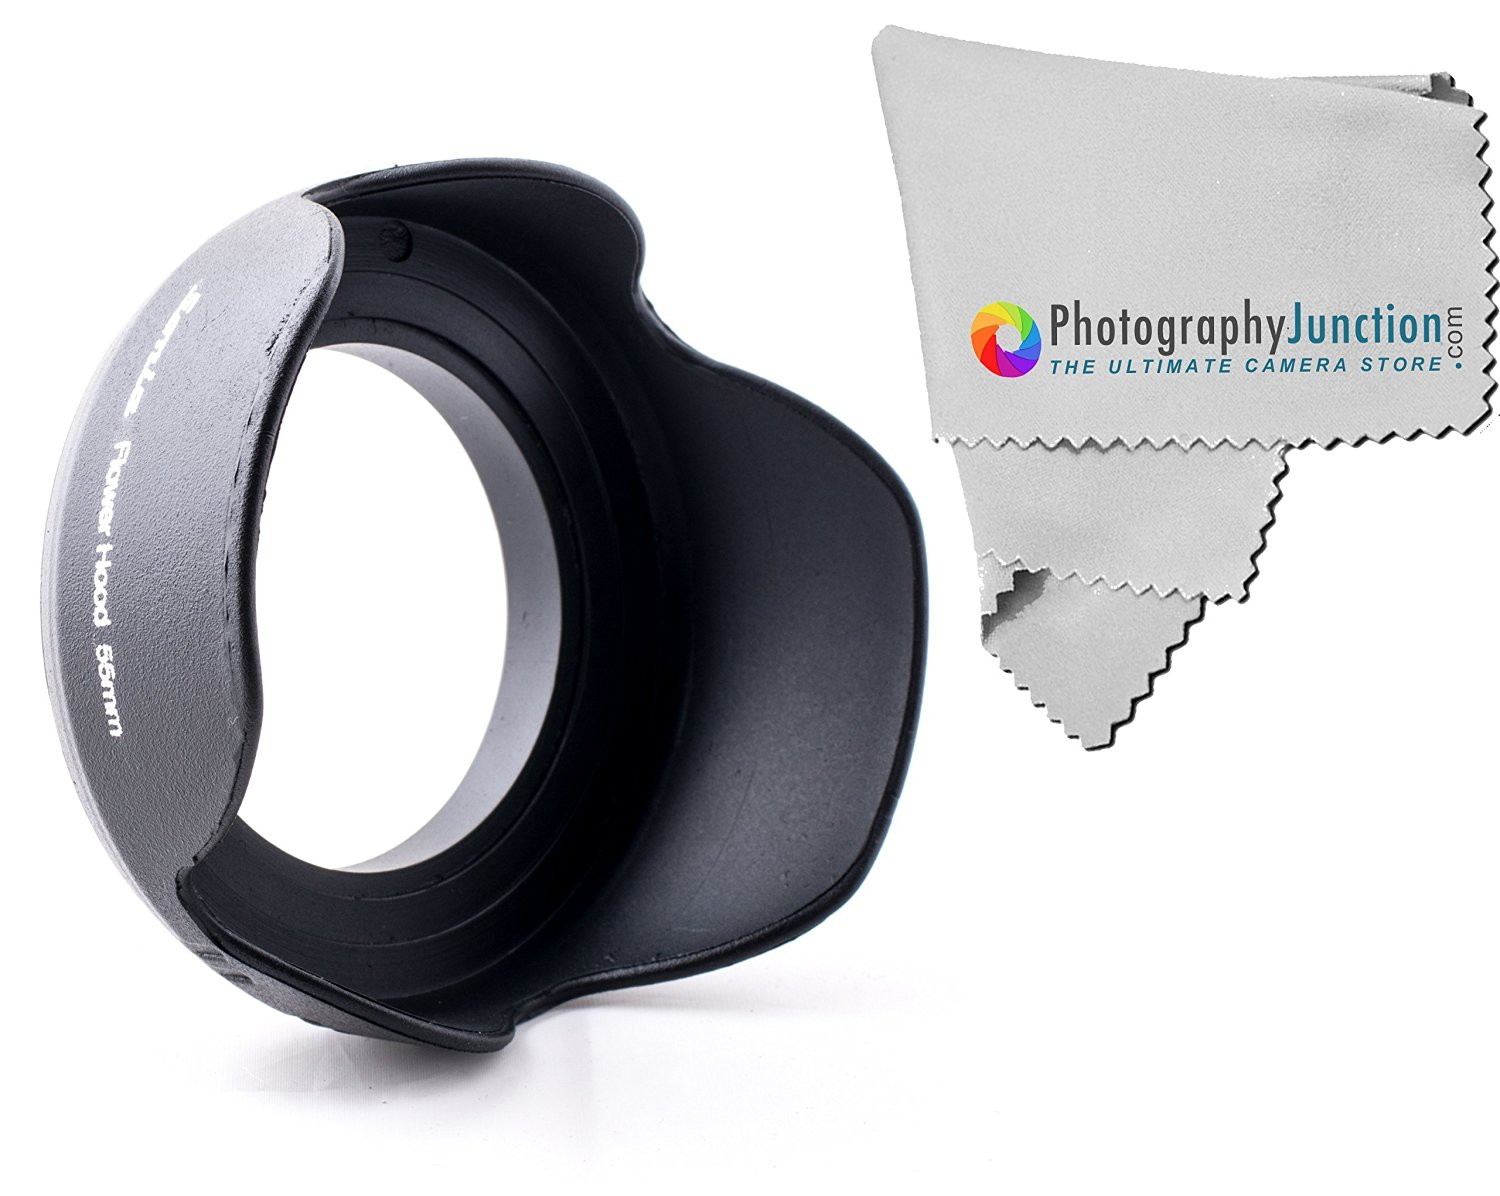 Photography Junction Sonia 55mm Screw on Tulip Shaped Flower Lens Hood Premium Micro Fiber Cloth for SONY Alpha Series A99 A77 A65 A58 A57 A55 A390 A100 DSLR Cameras